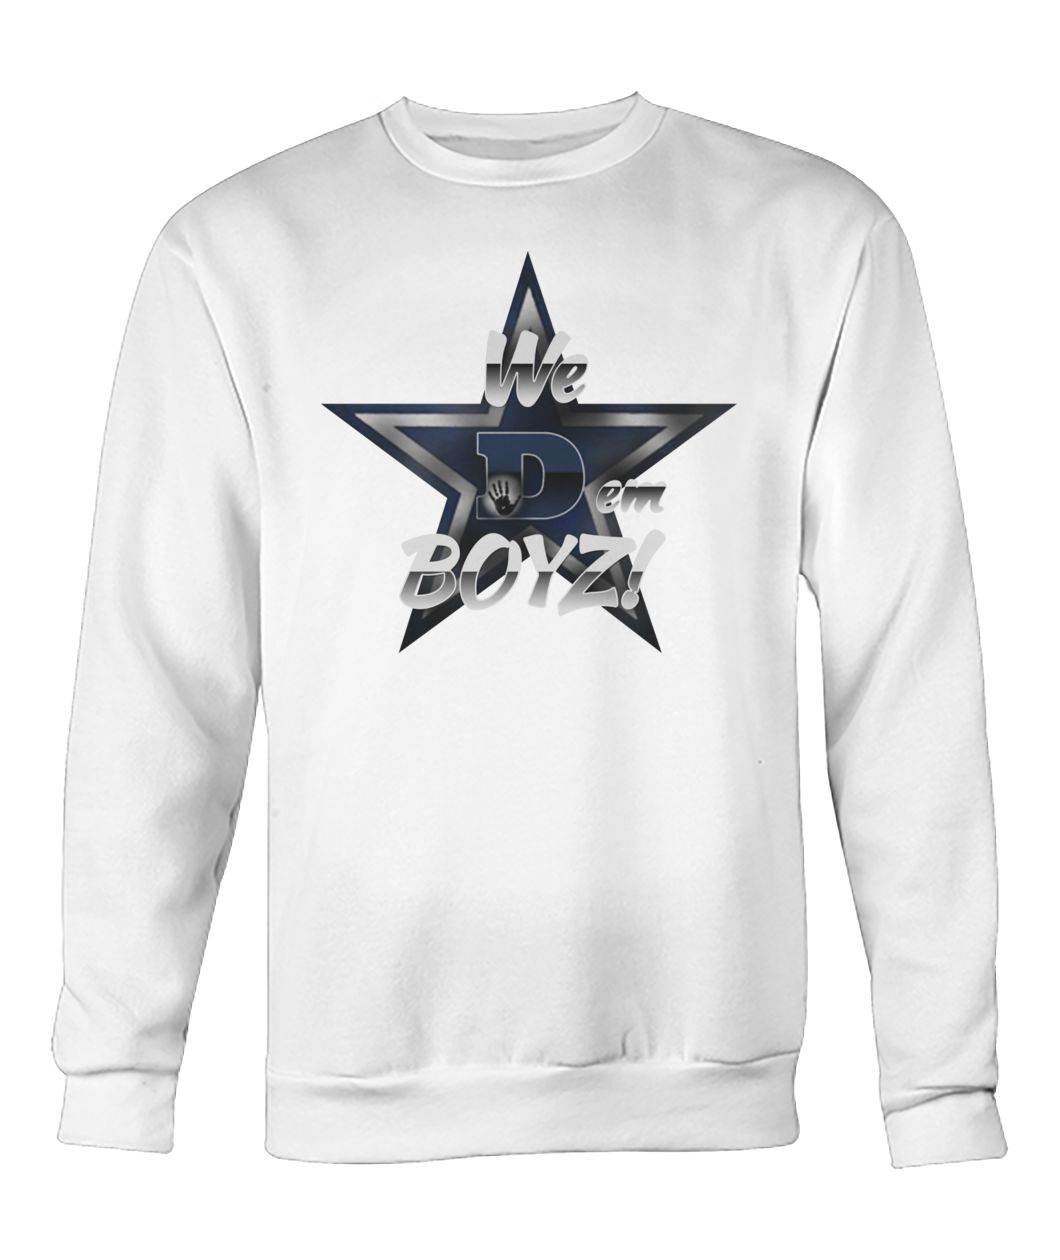 Dallas cowboys we dem boyz crew neck sweatshirt